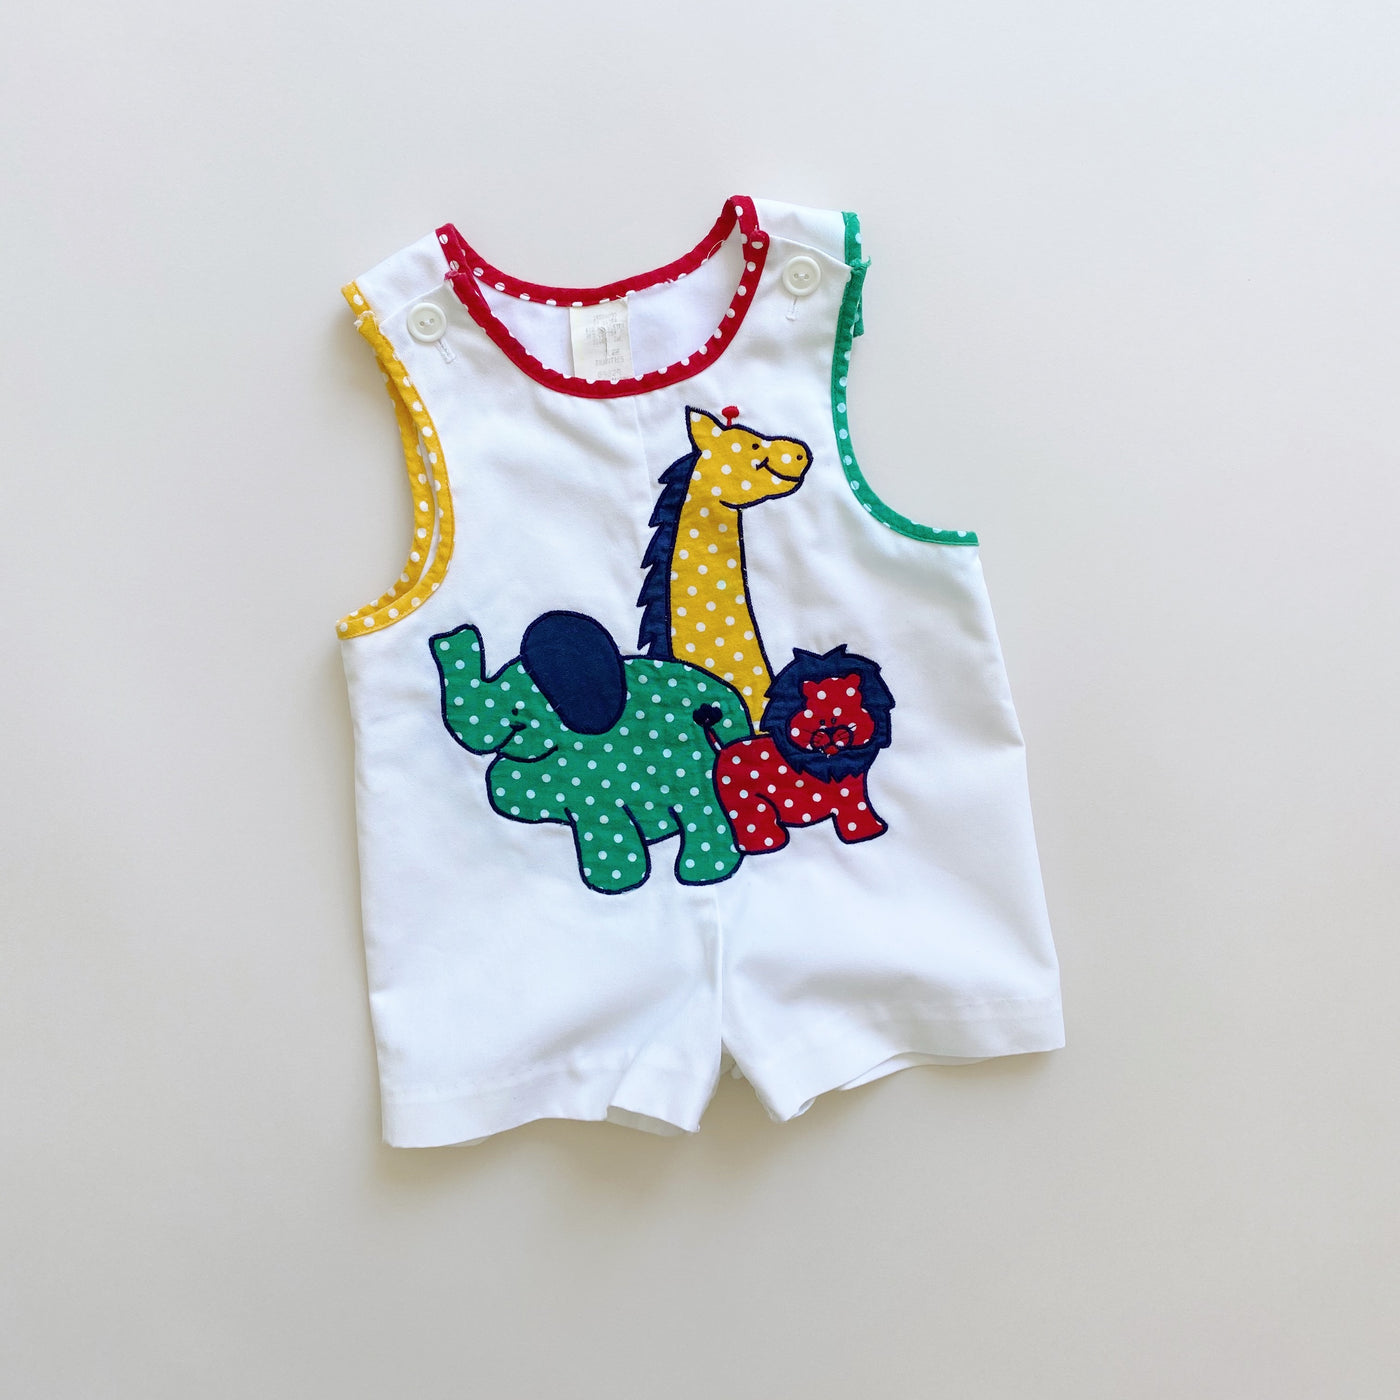 Irie Animal Jon Jon / Size 12M